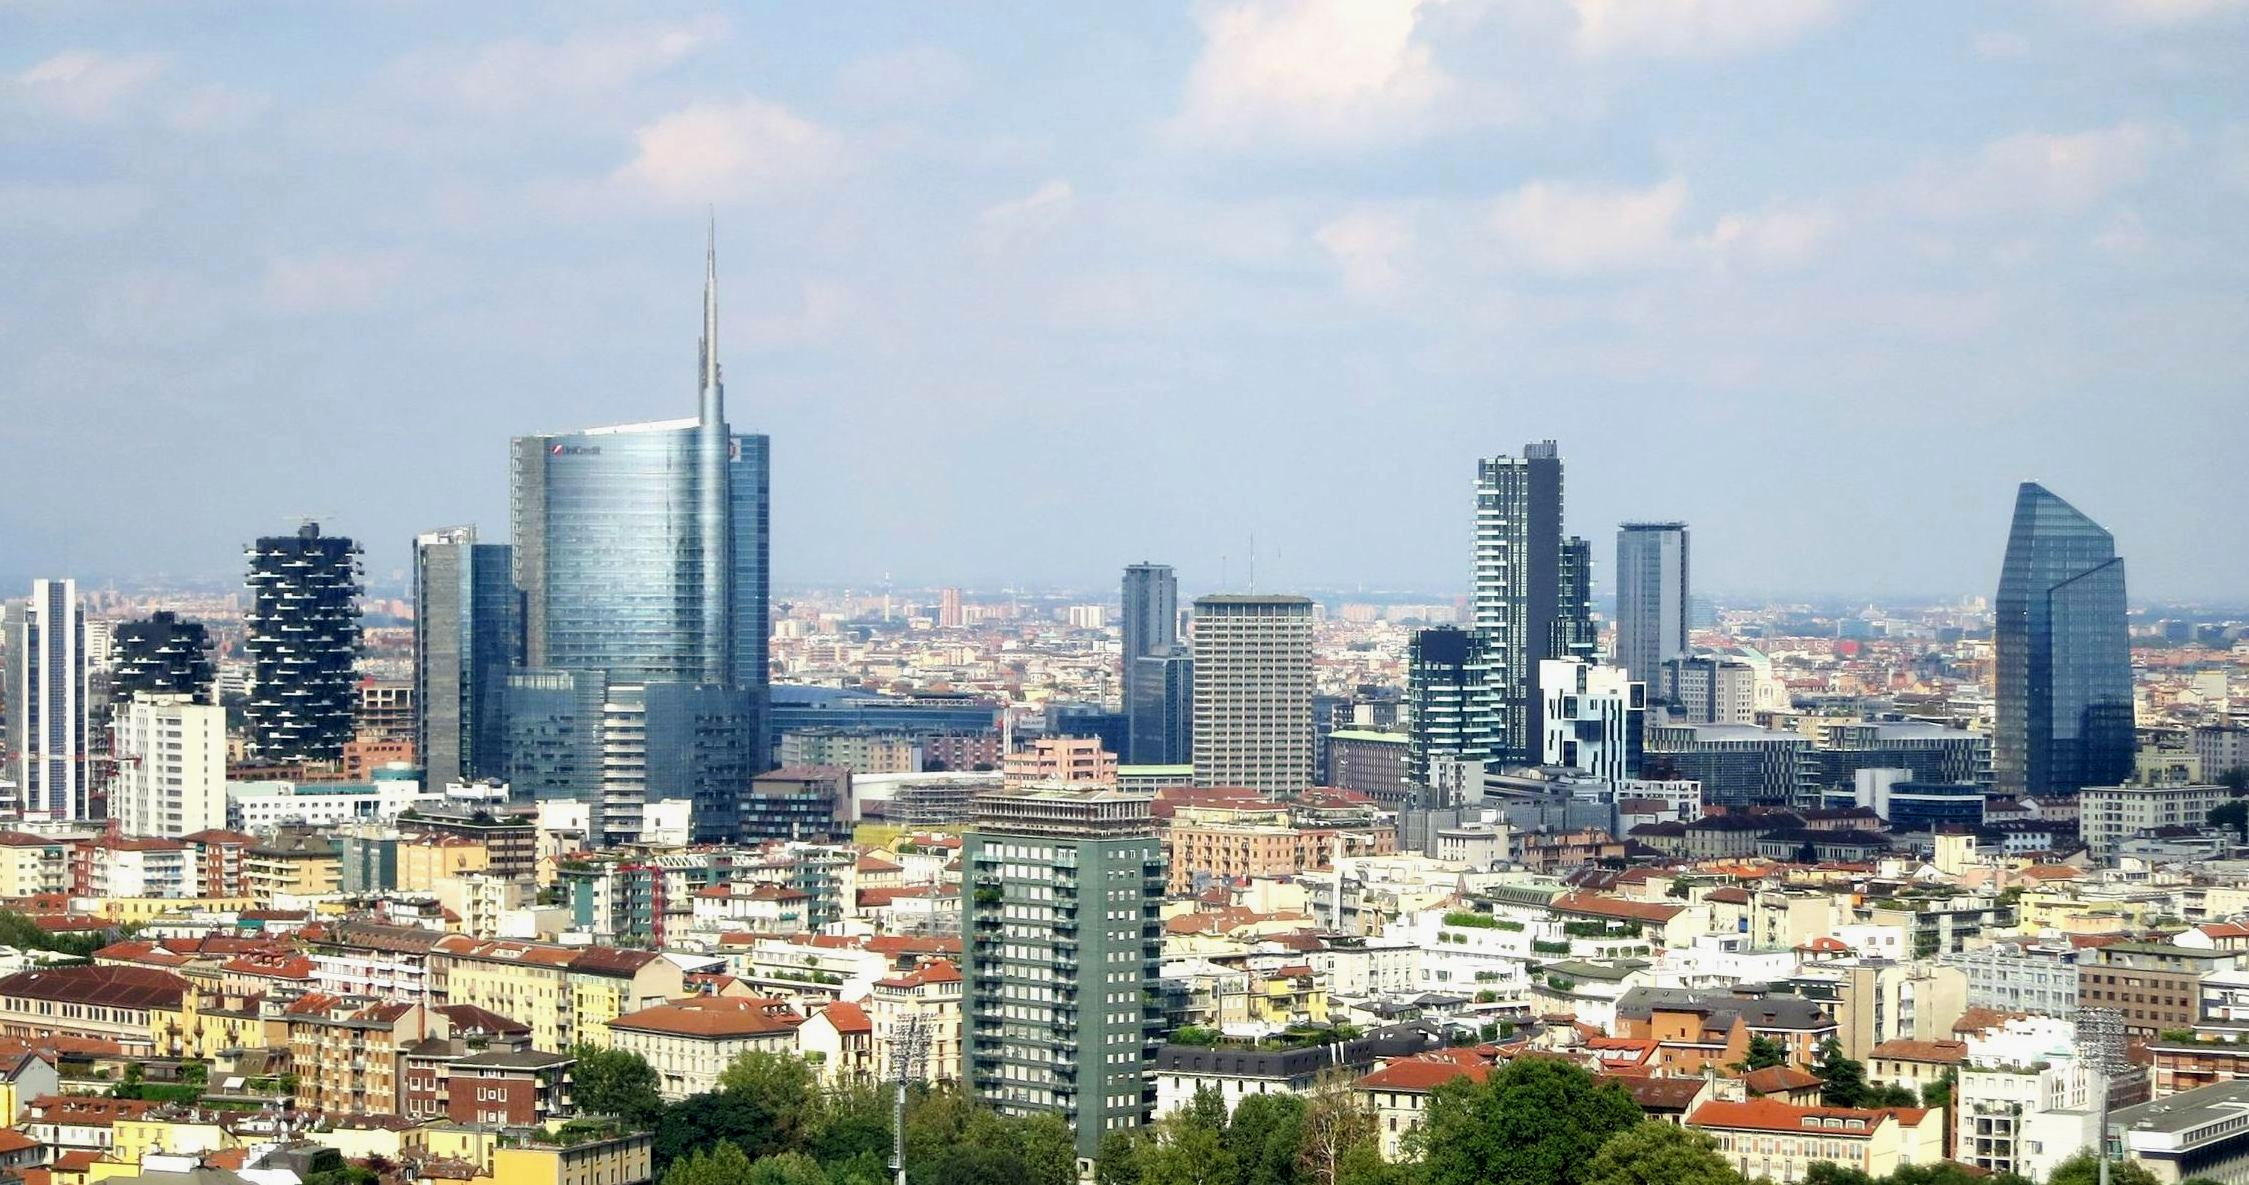 The skyline of new Milan